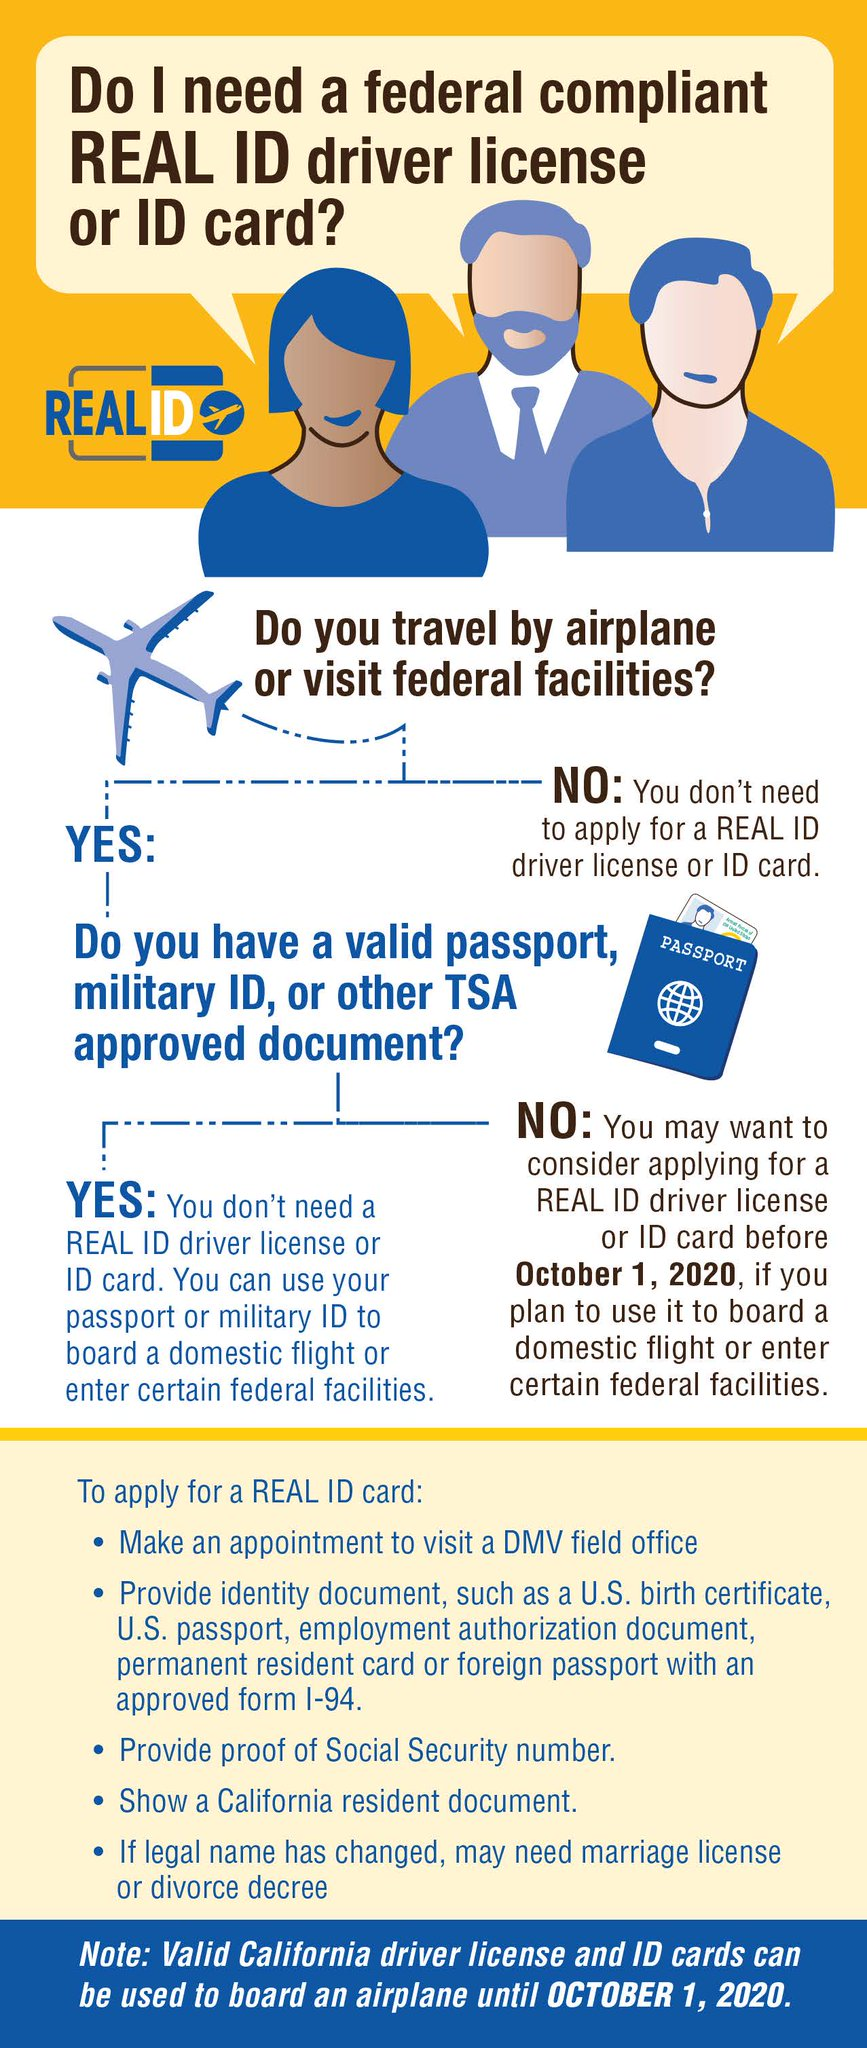 To Flight For Need Base Ca Real Or Another Facilities Document On October 2020 Board Twitter Domestic Dmv Id 1 Approved Federal Military Enter